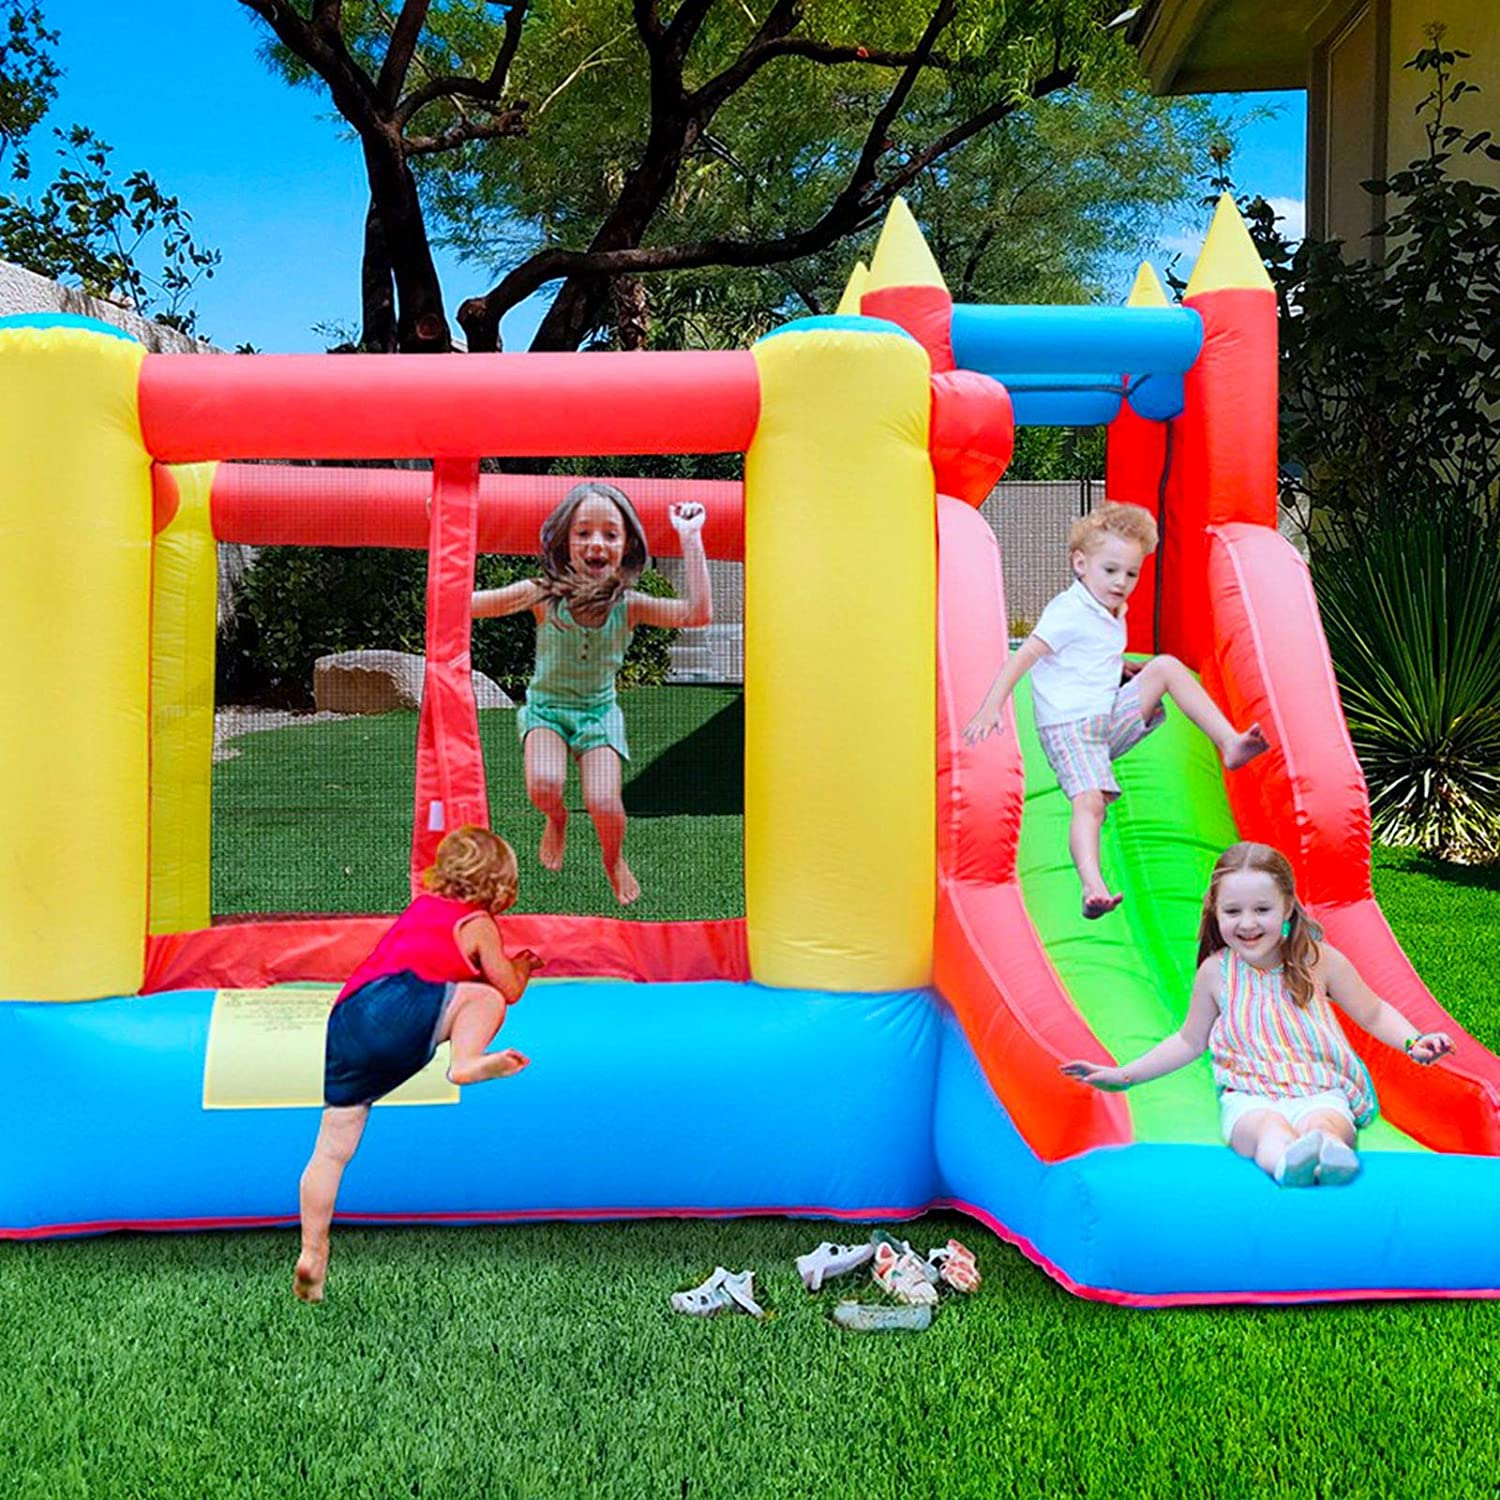 Inflatable Bouncer 6 in 1 Kids Jumping Castle with Blower Long Slide Jump Area Basketball Rim Ball Pool Indoor Outdoor Backyard Bouncy House Durable Sewn Thicken Material US Fast 7-10 Days Delivery